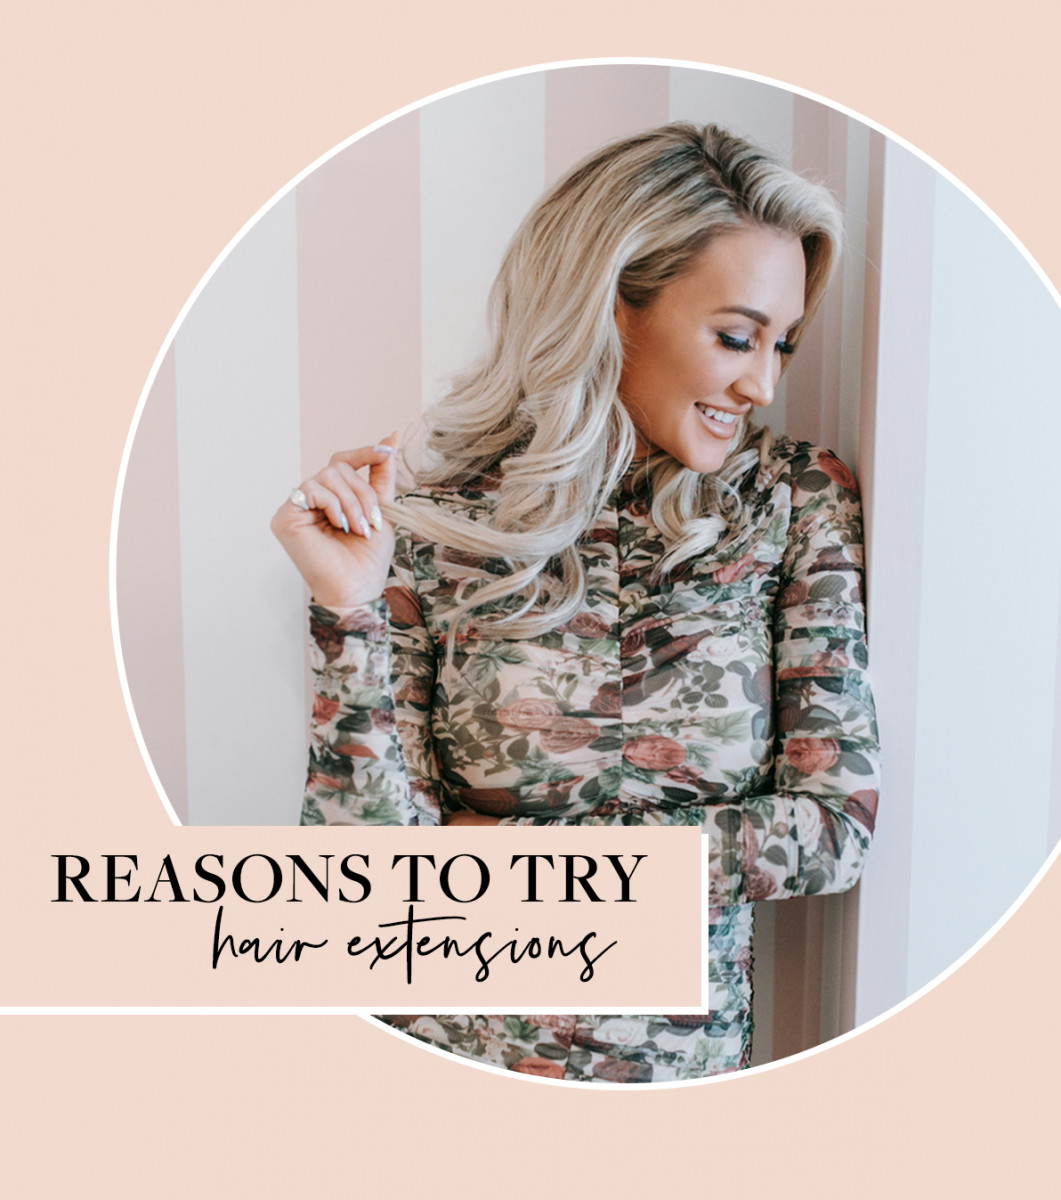 5 Reasons to Try Extensions